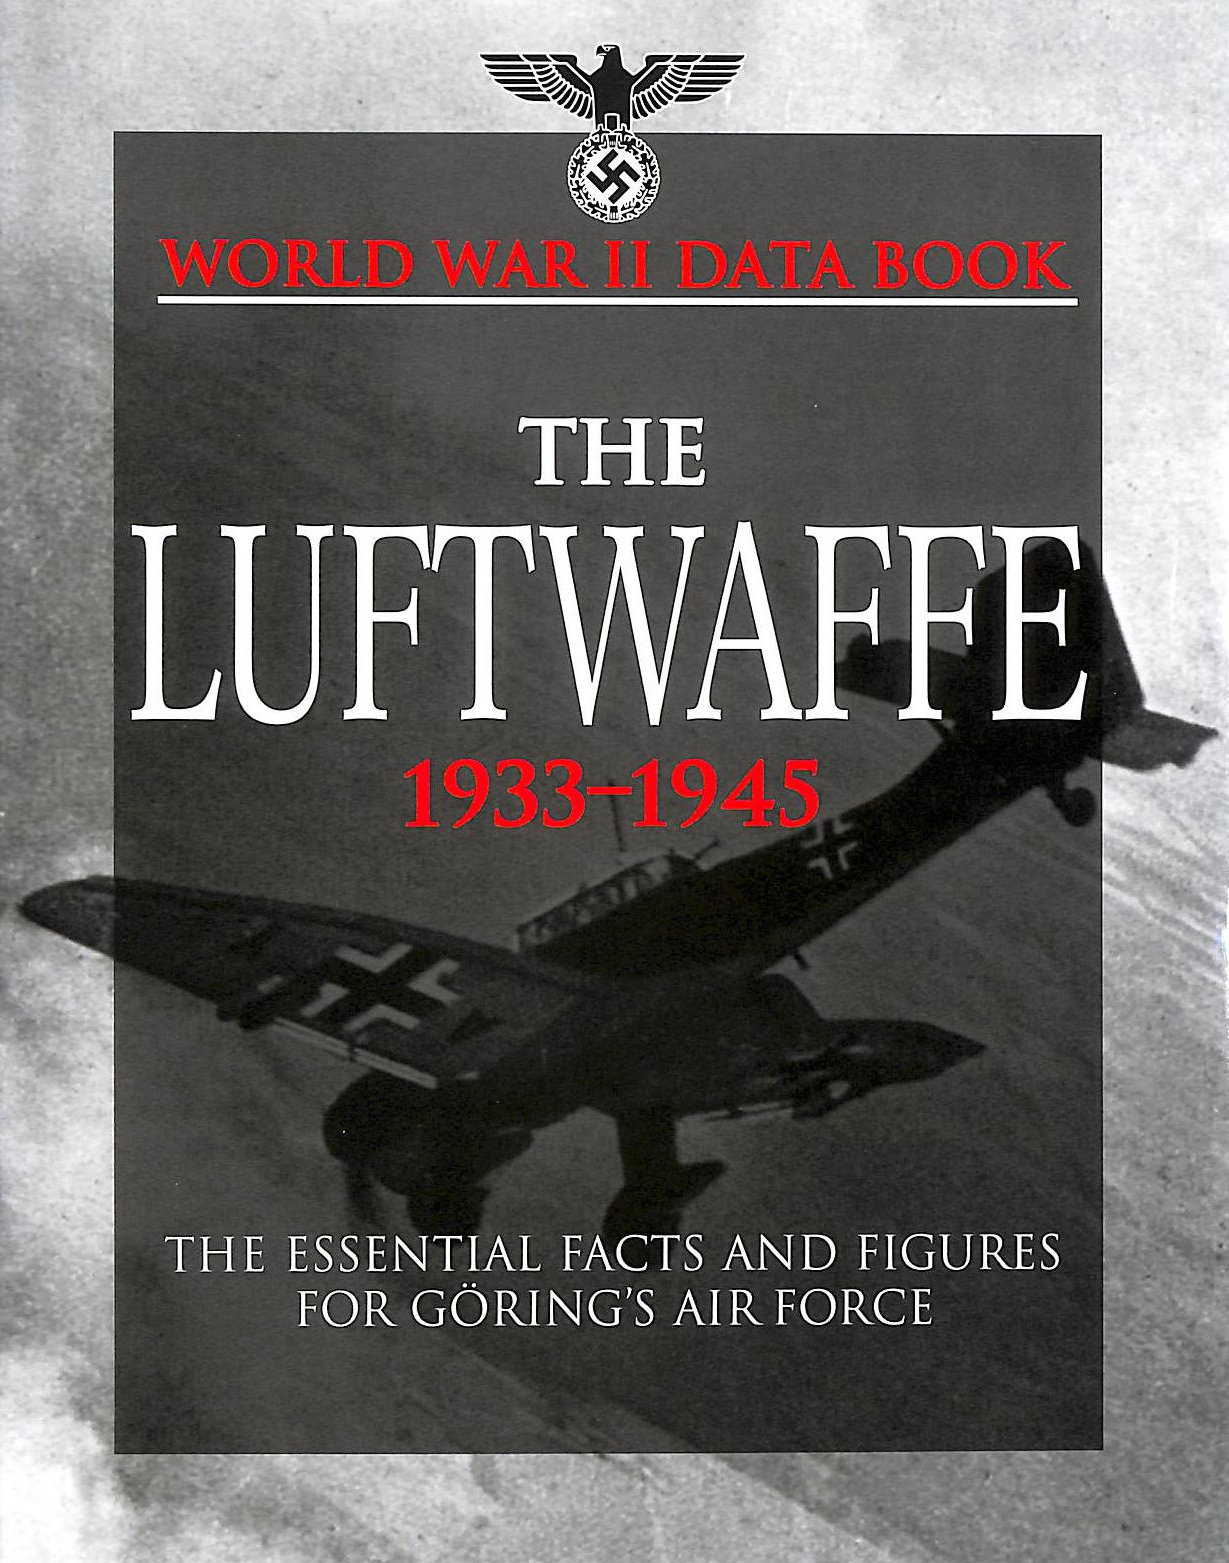 Image for World War Ii Data Book: The Luftwaffe 1933-1945: The Essential Facts And Figures For Goring's Air Force